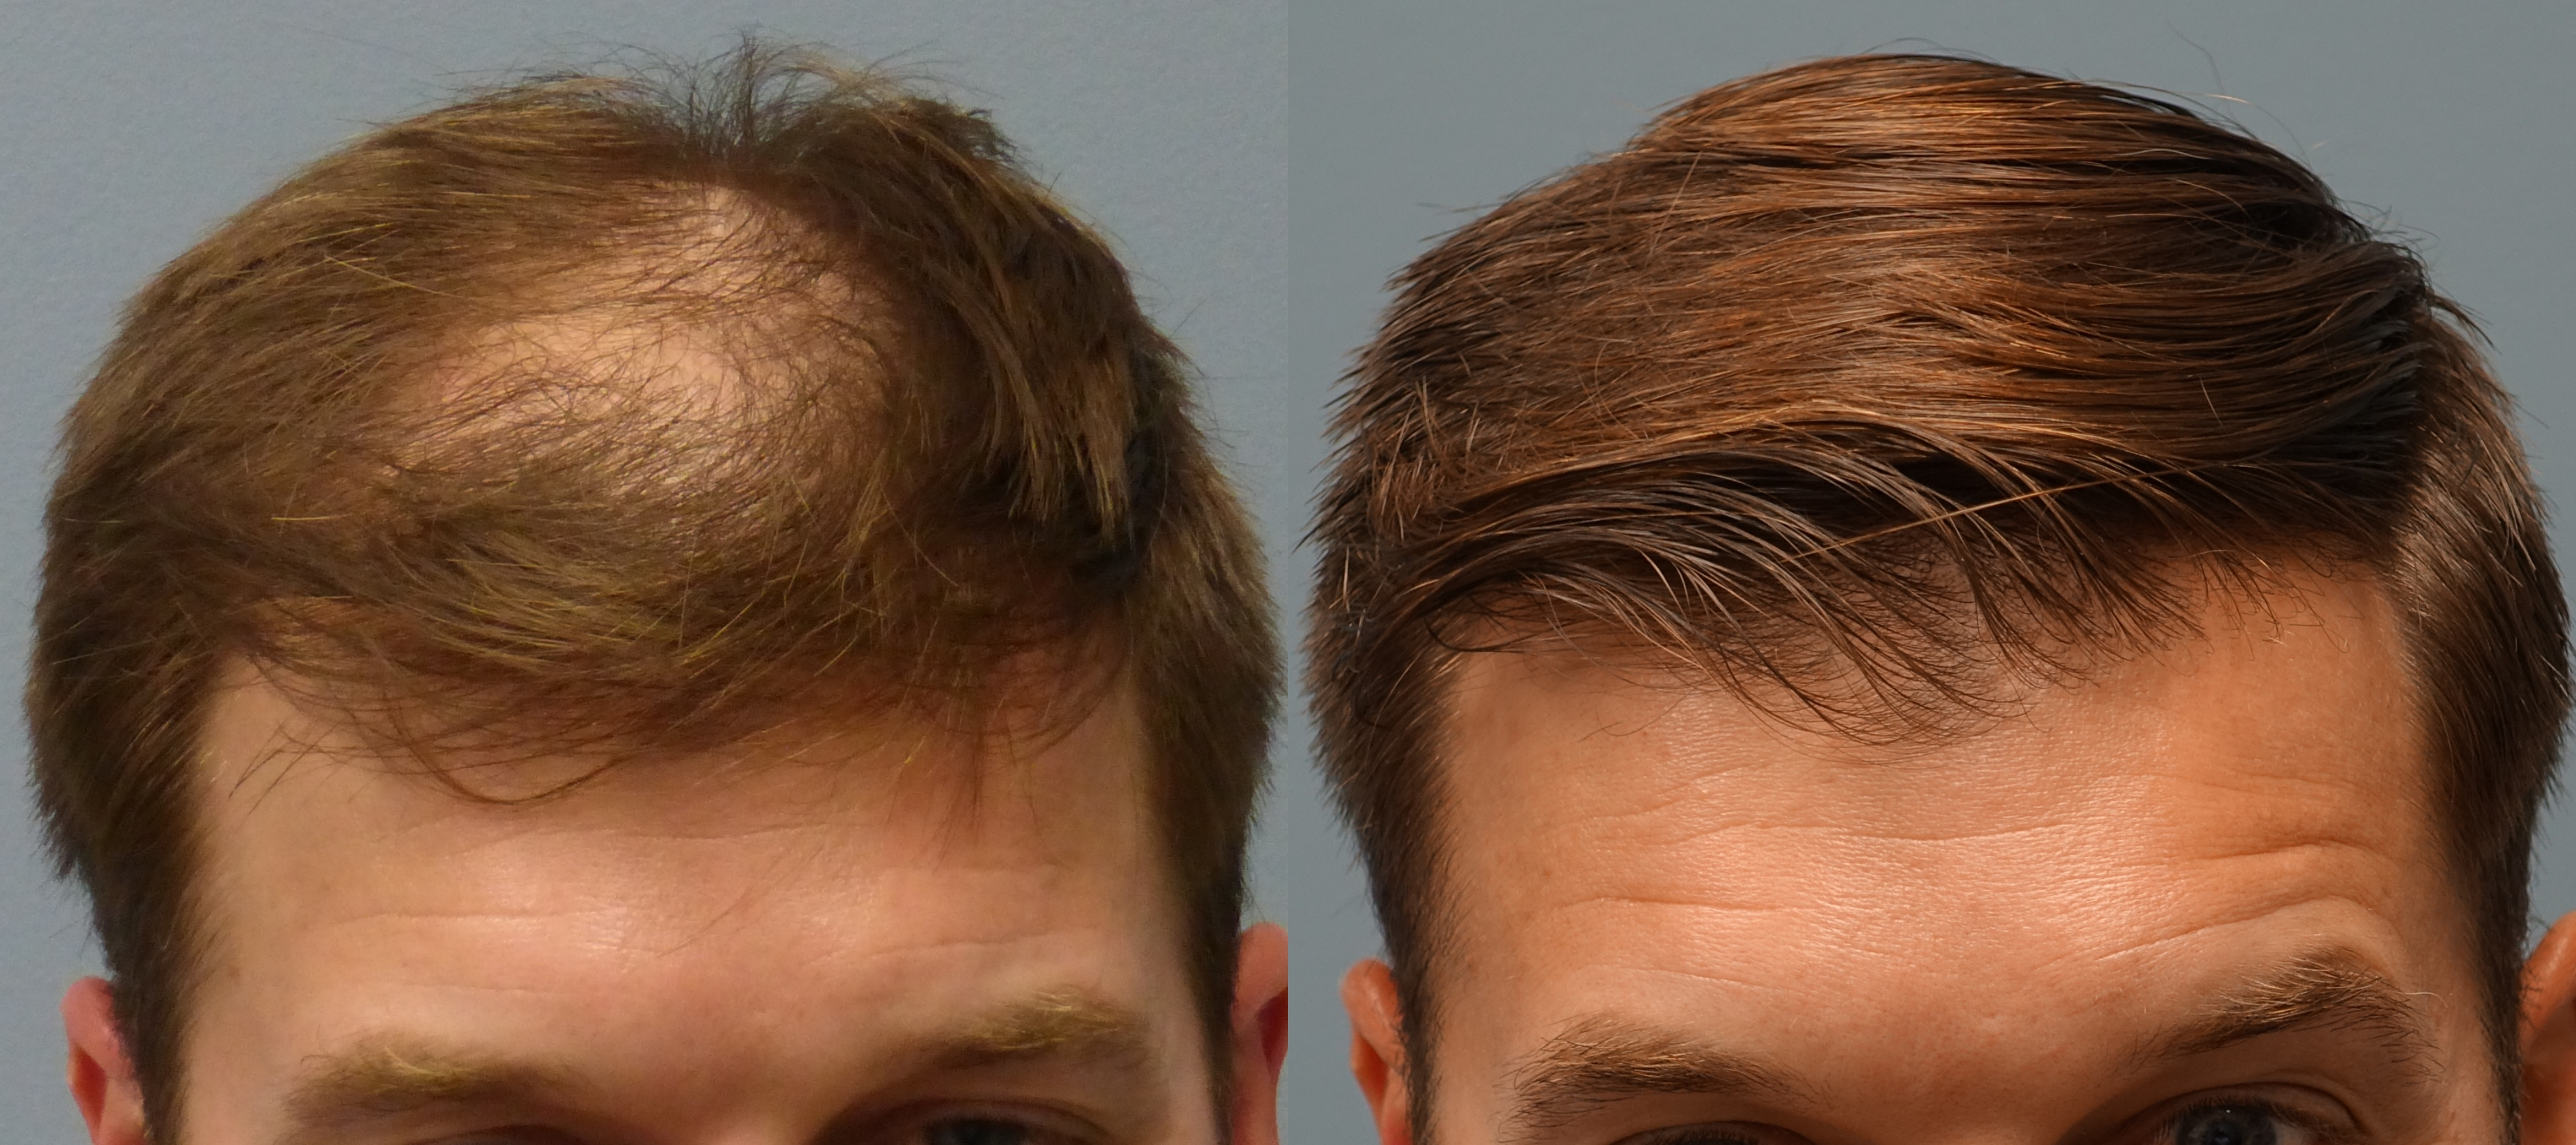 Before-and-After-Neograft-Hair-Transplant-